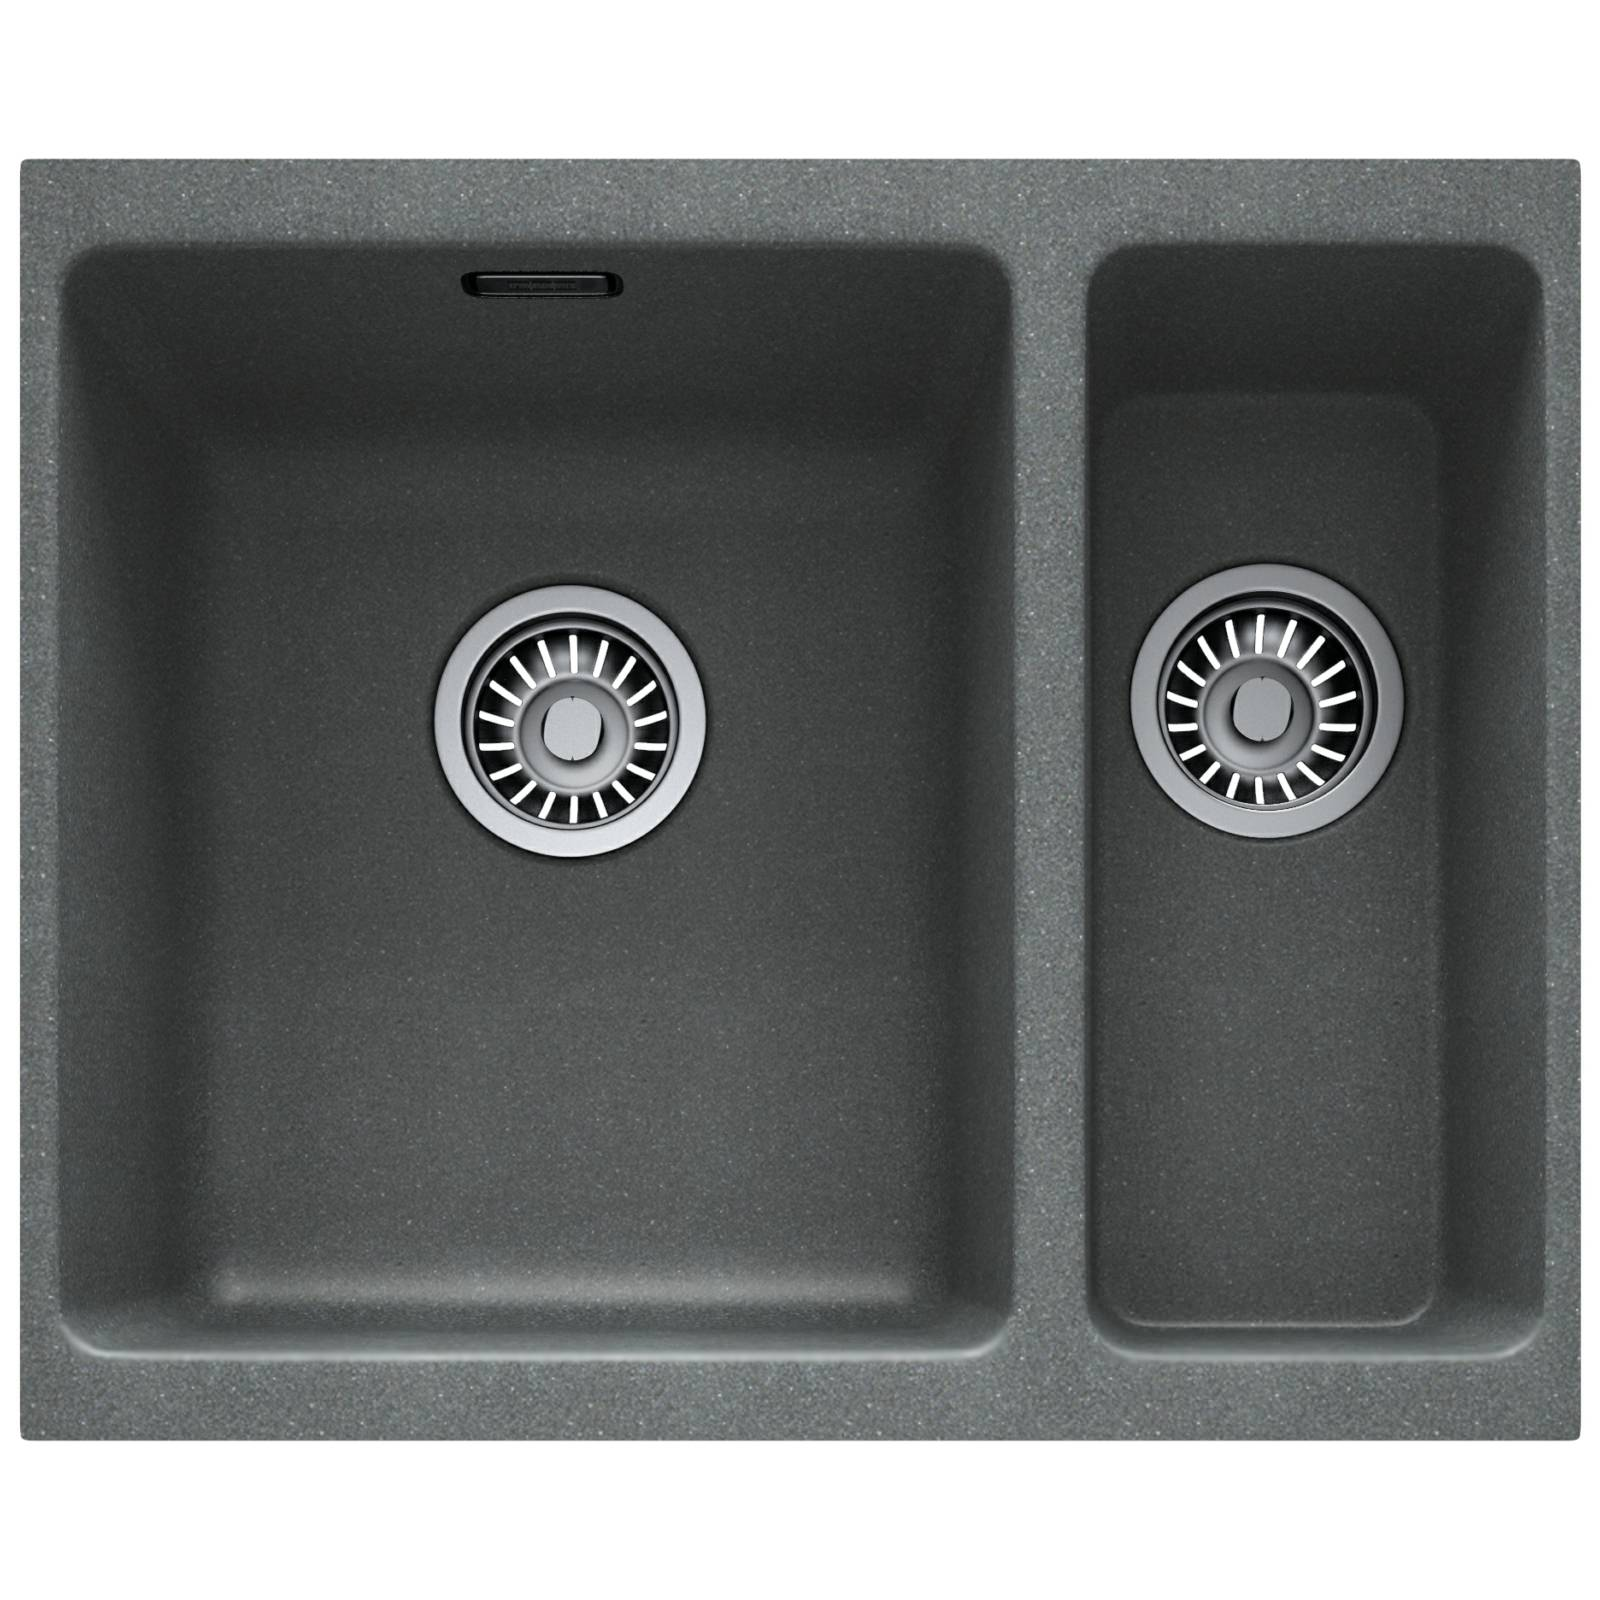 Franke Grey Sink : Franke Kubus KBG 160 Fragranite Stone Grey 1.5 Bowl Undermount Sink ...